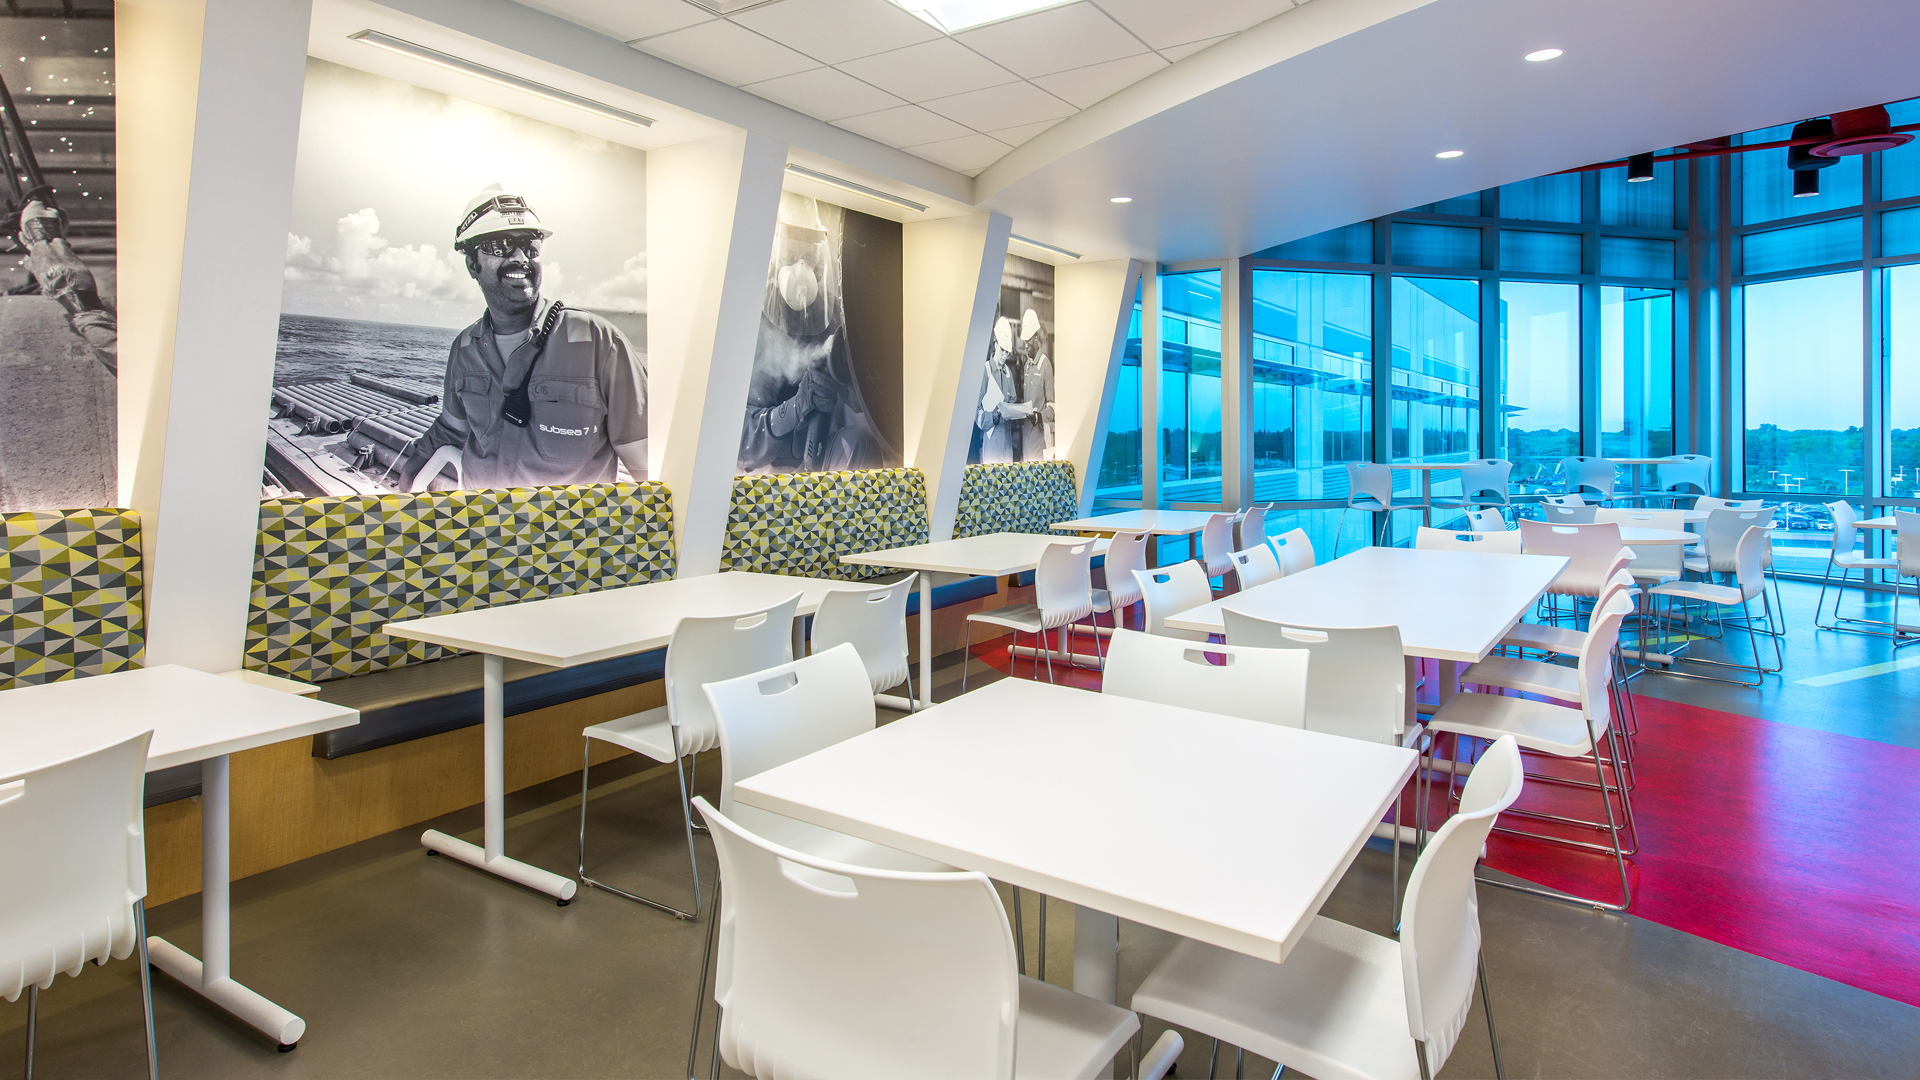 Corporate Interior Design Houston Subsea 7 Breakroom Banquettes and Dining Tables